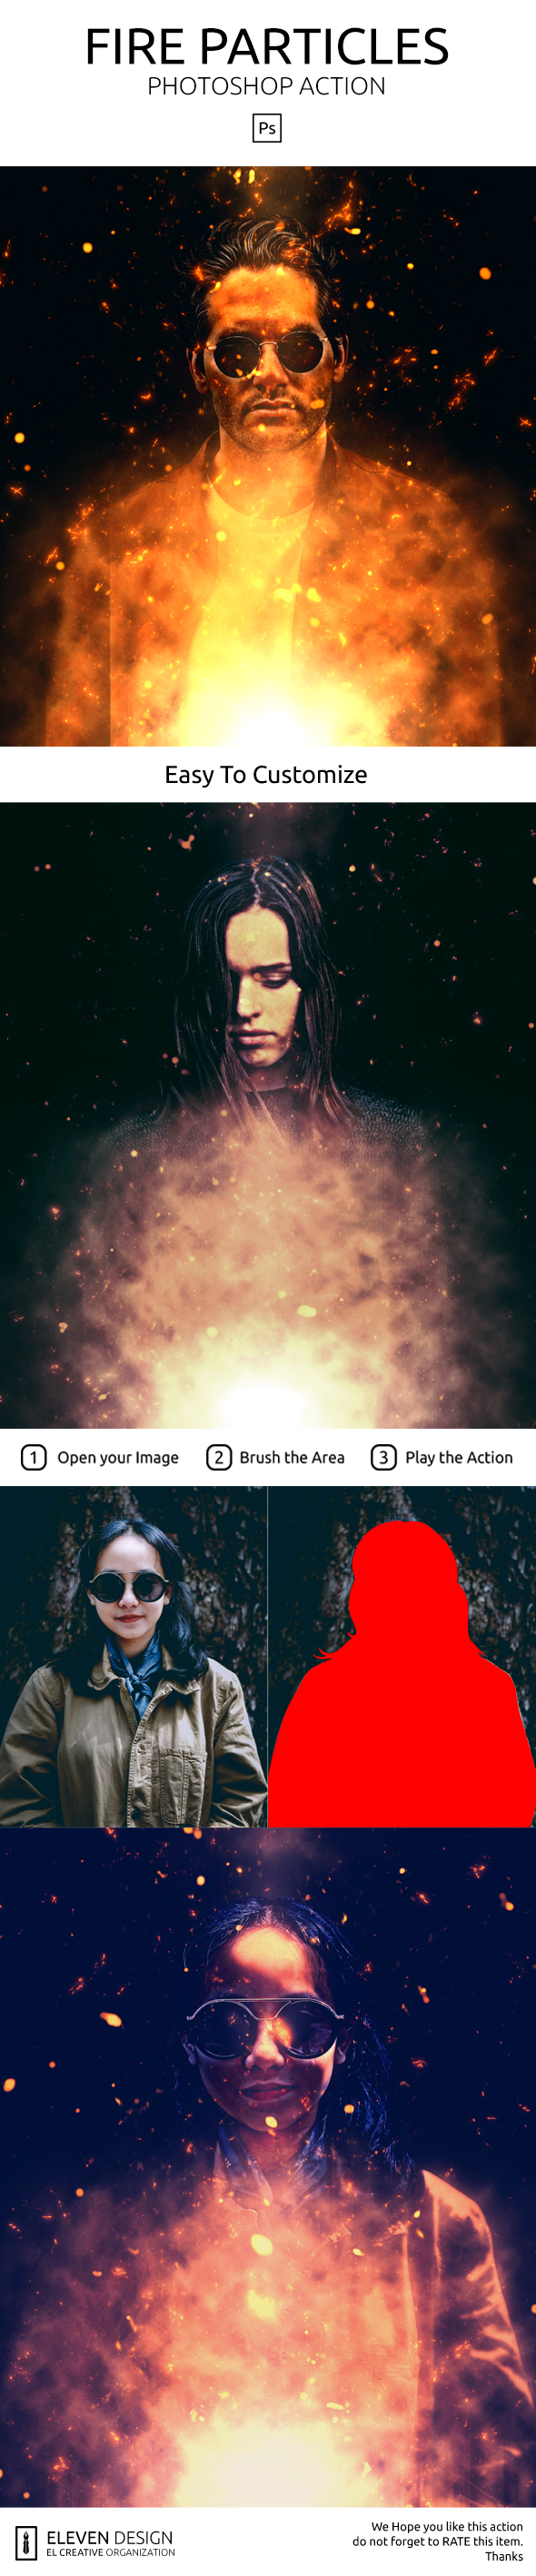 GraphicRiver Fiire Particle Photoshop Action 21017962